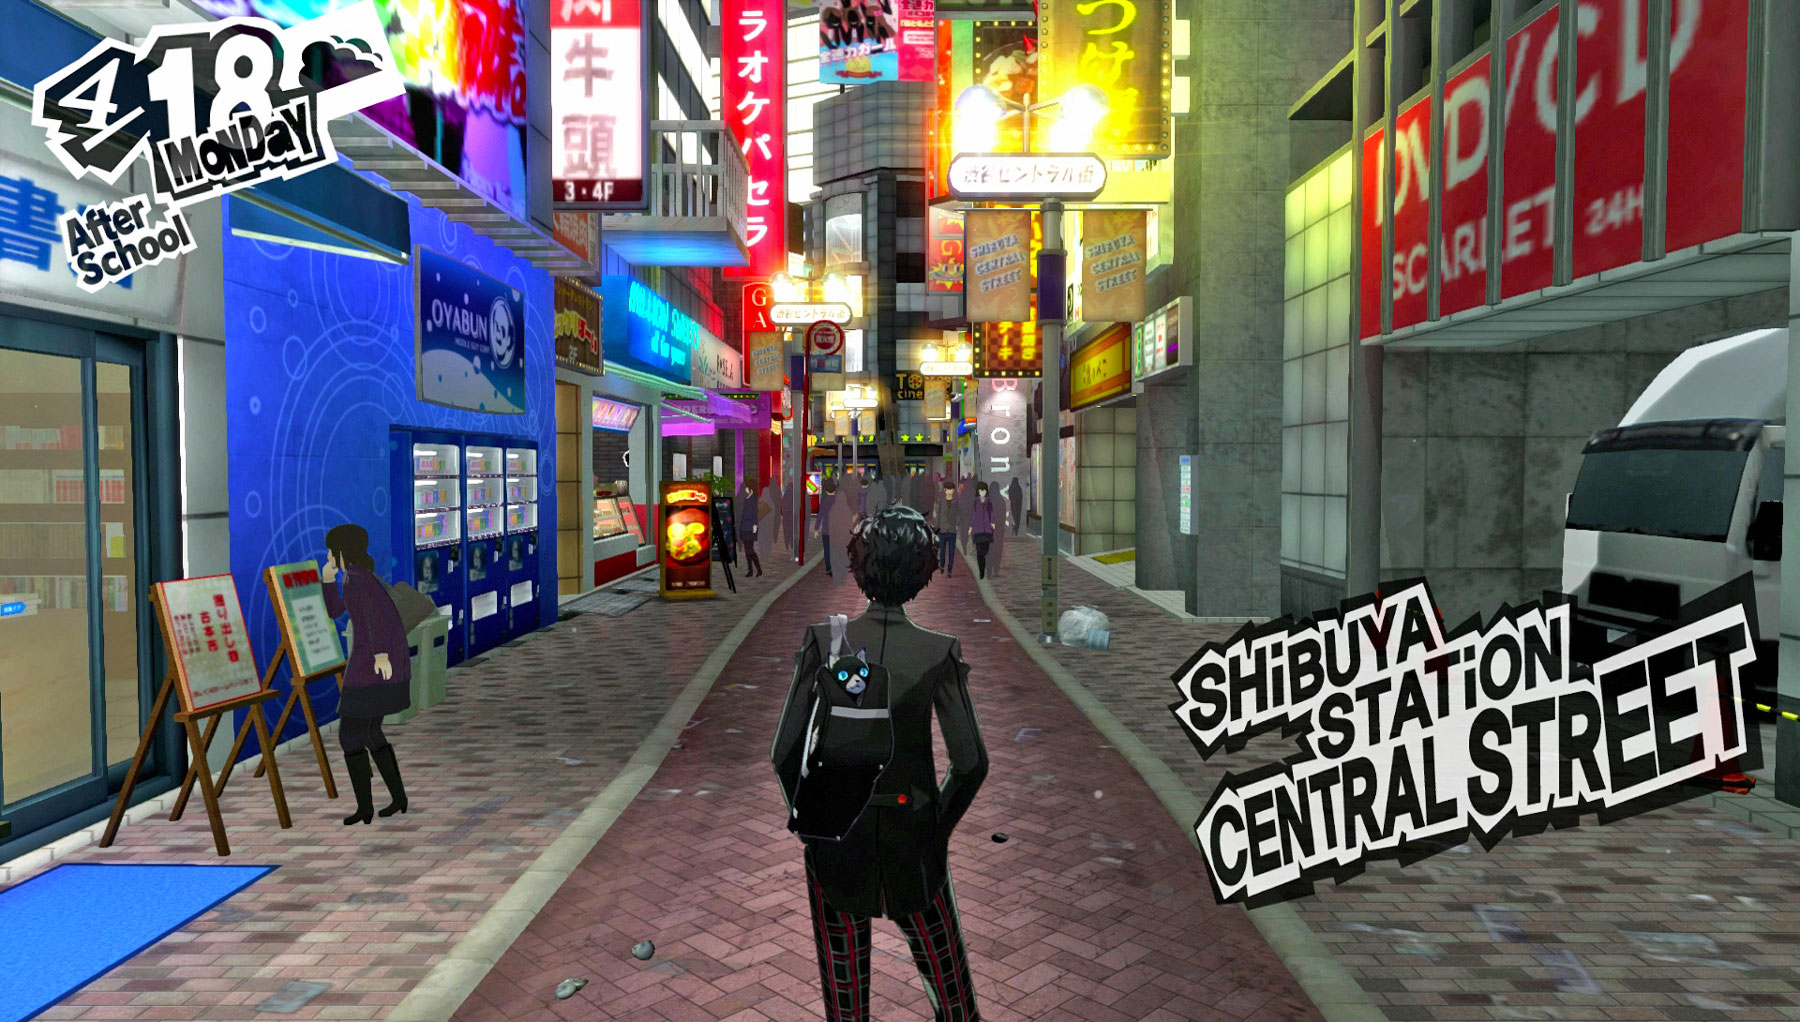 'Persona 5' took me back to Tokyo